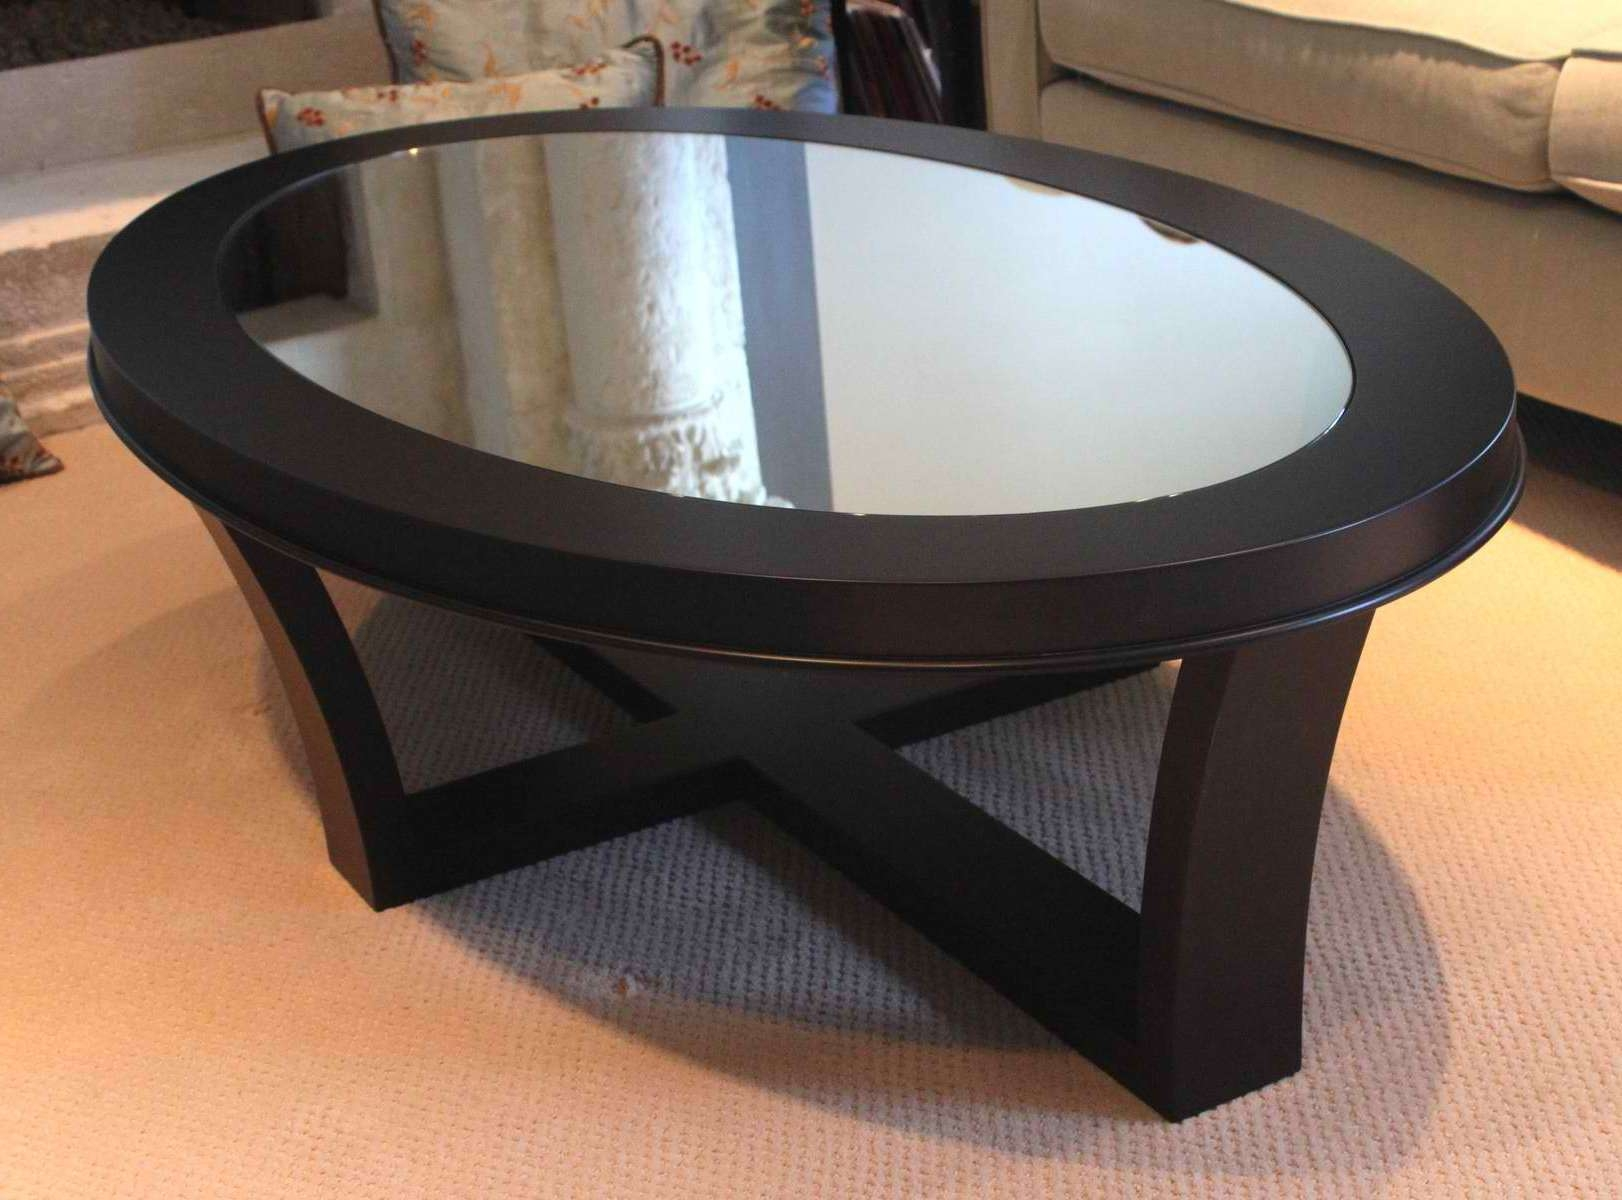 Preferred Glass Top Storage Coffee Tables In Oval Glass Top Coffee Table With Storage And Wooden Base With (View 19 of 20)